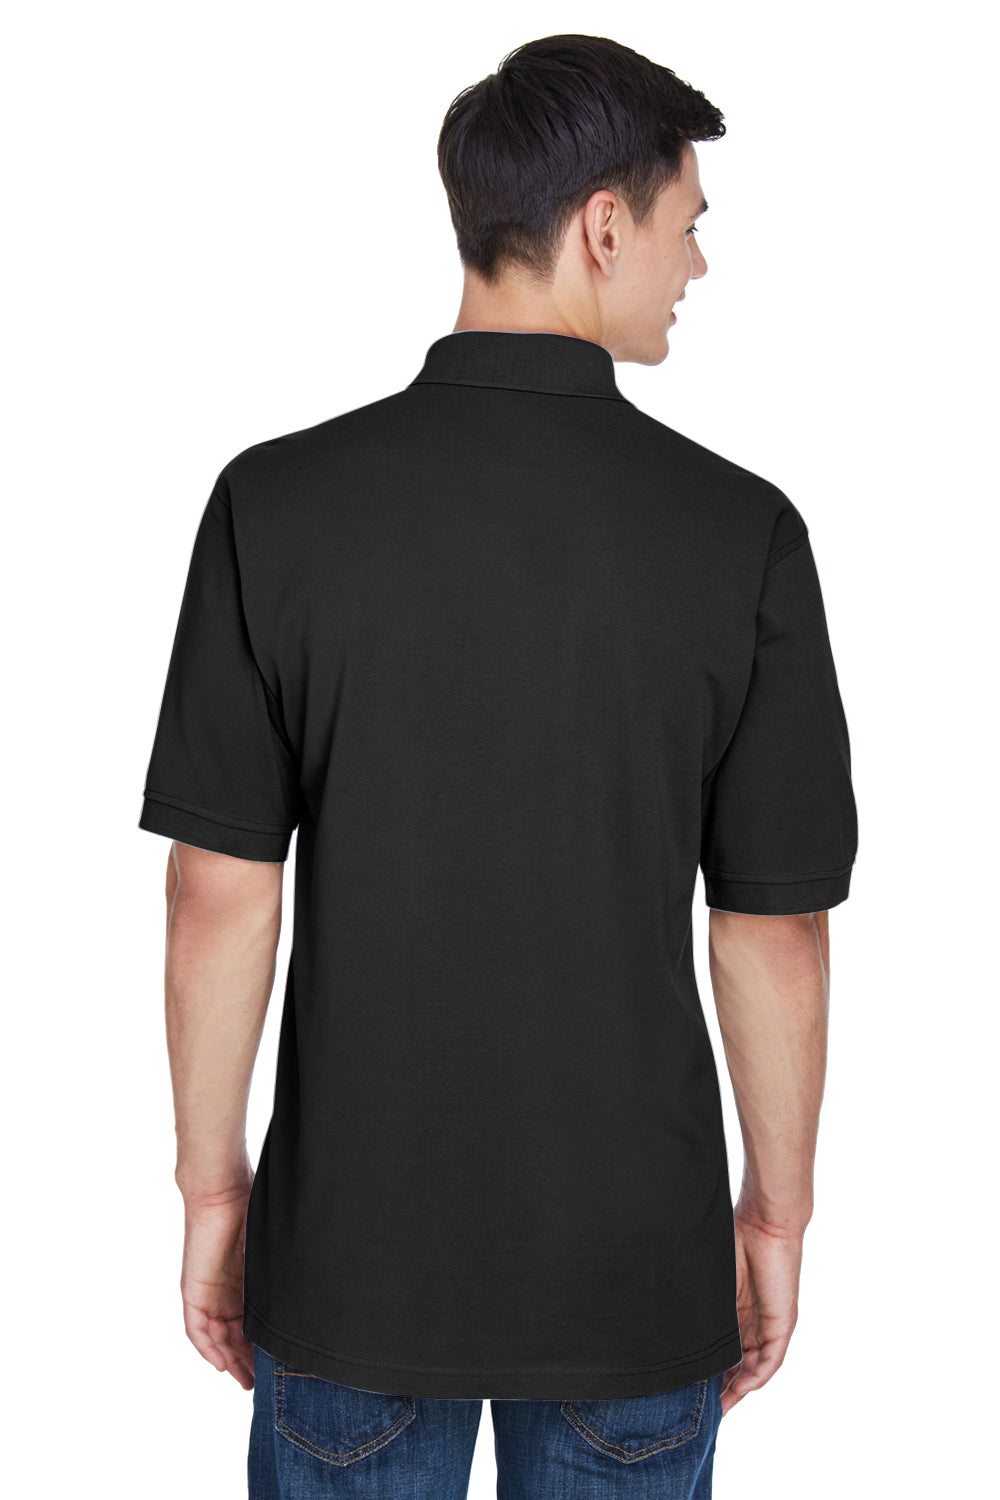 Harriton M265 Mens Easy Blend Wrinkle Resistant Short Sleeve Polo Shirt Black Back